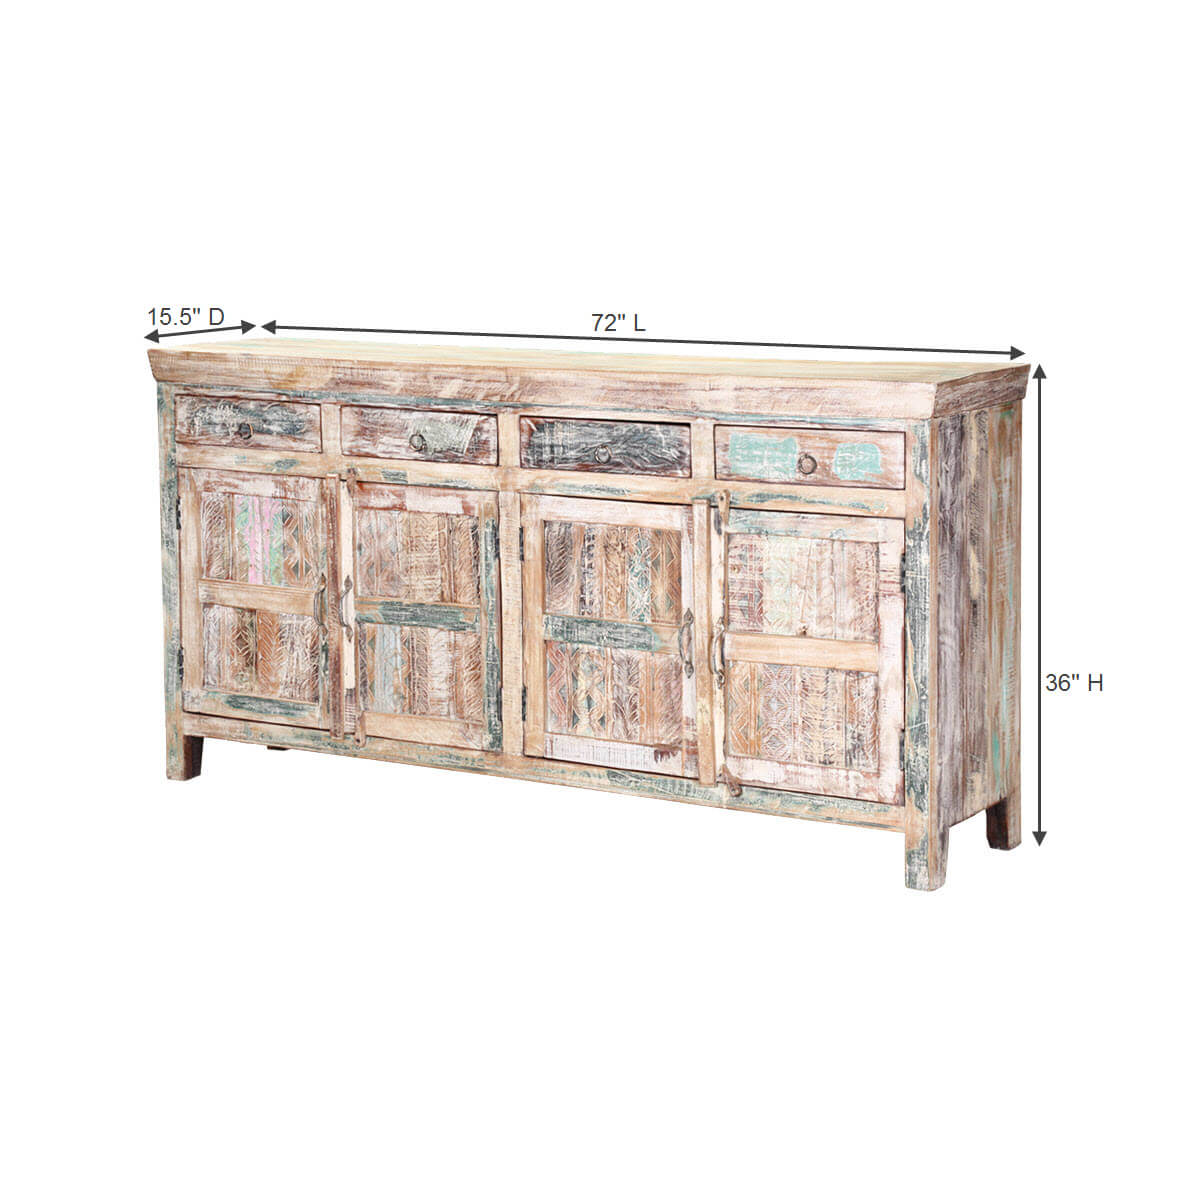 ... Tucson 72 Handcrafted Reclaimed Wood 4 Drawer Rustic Sideboard ...